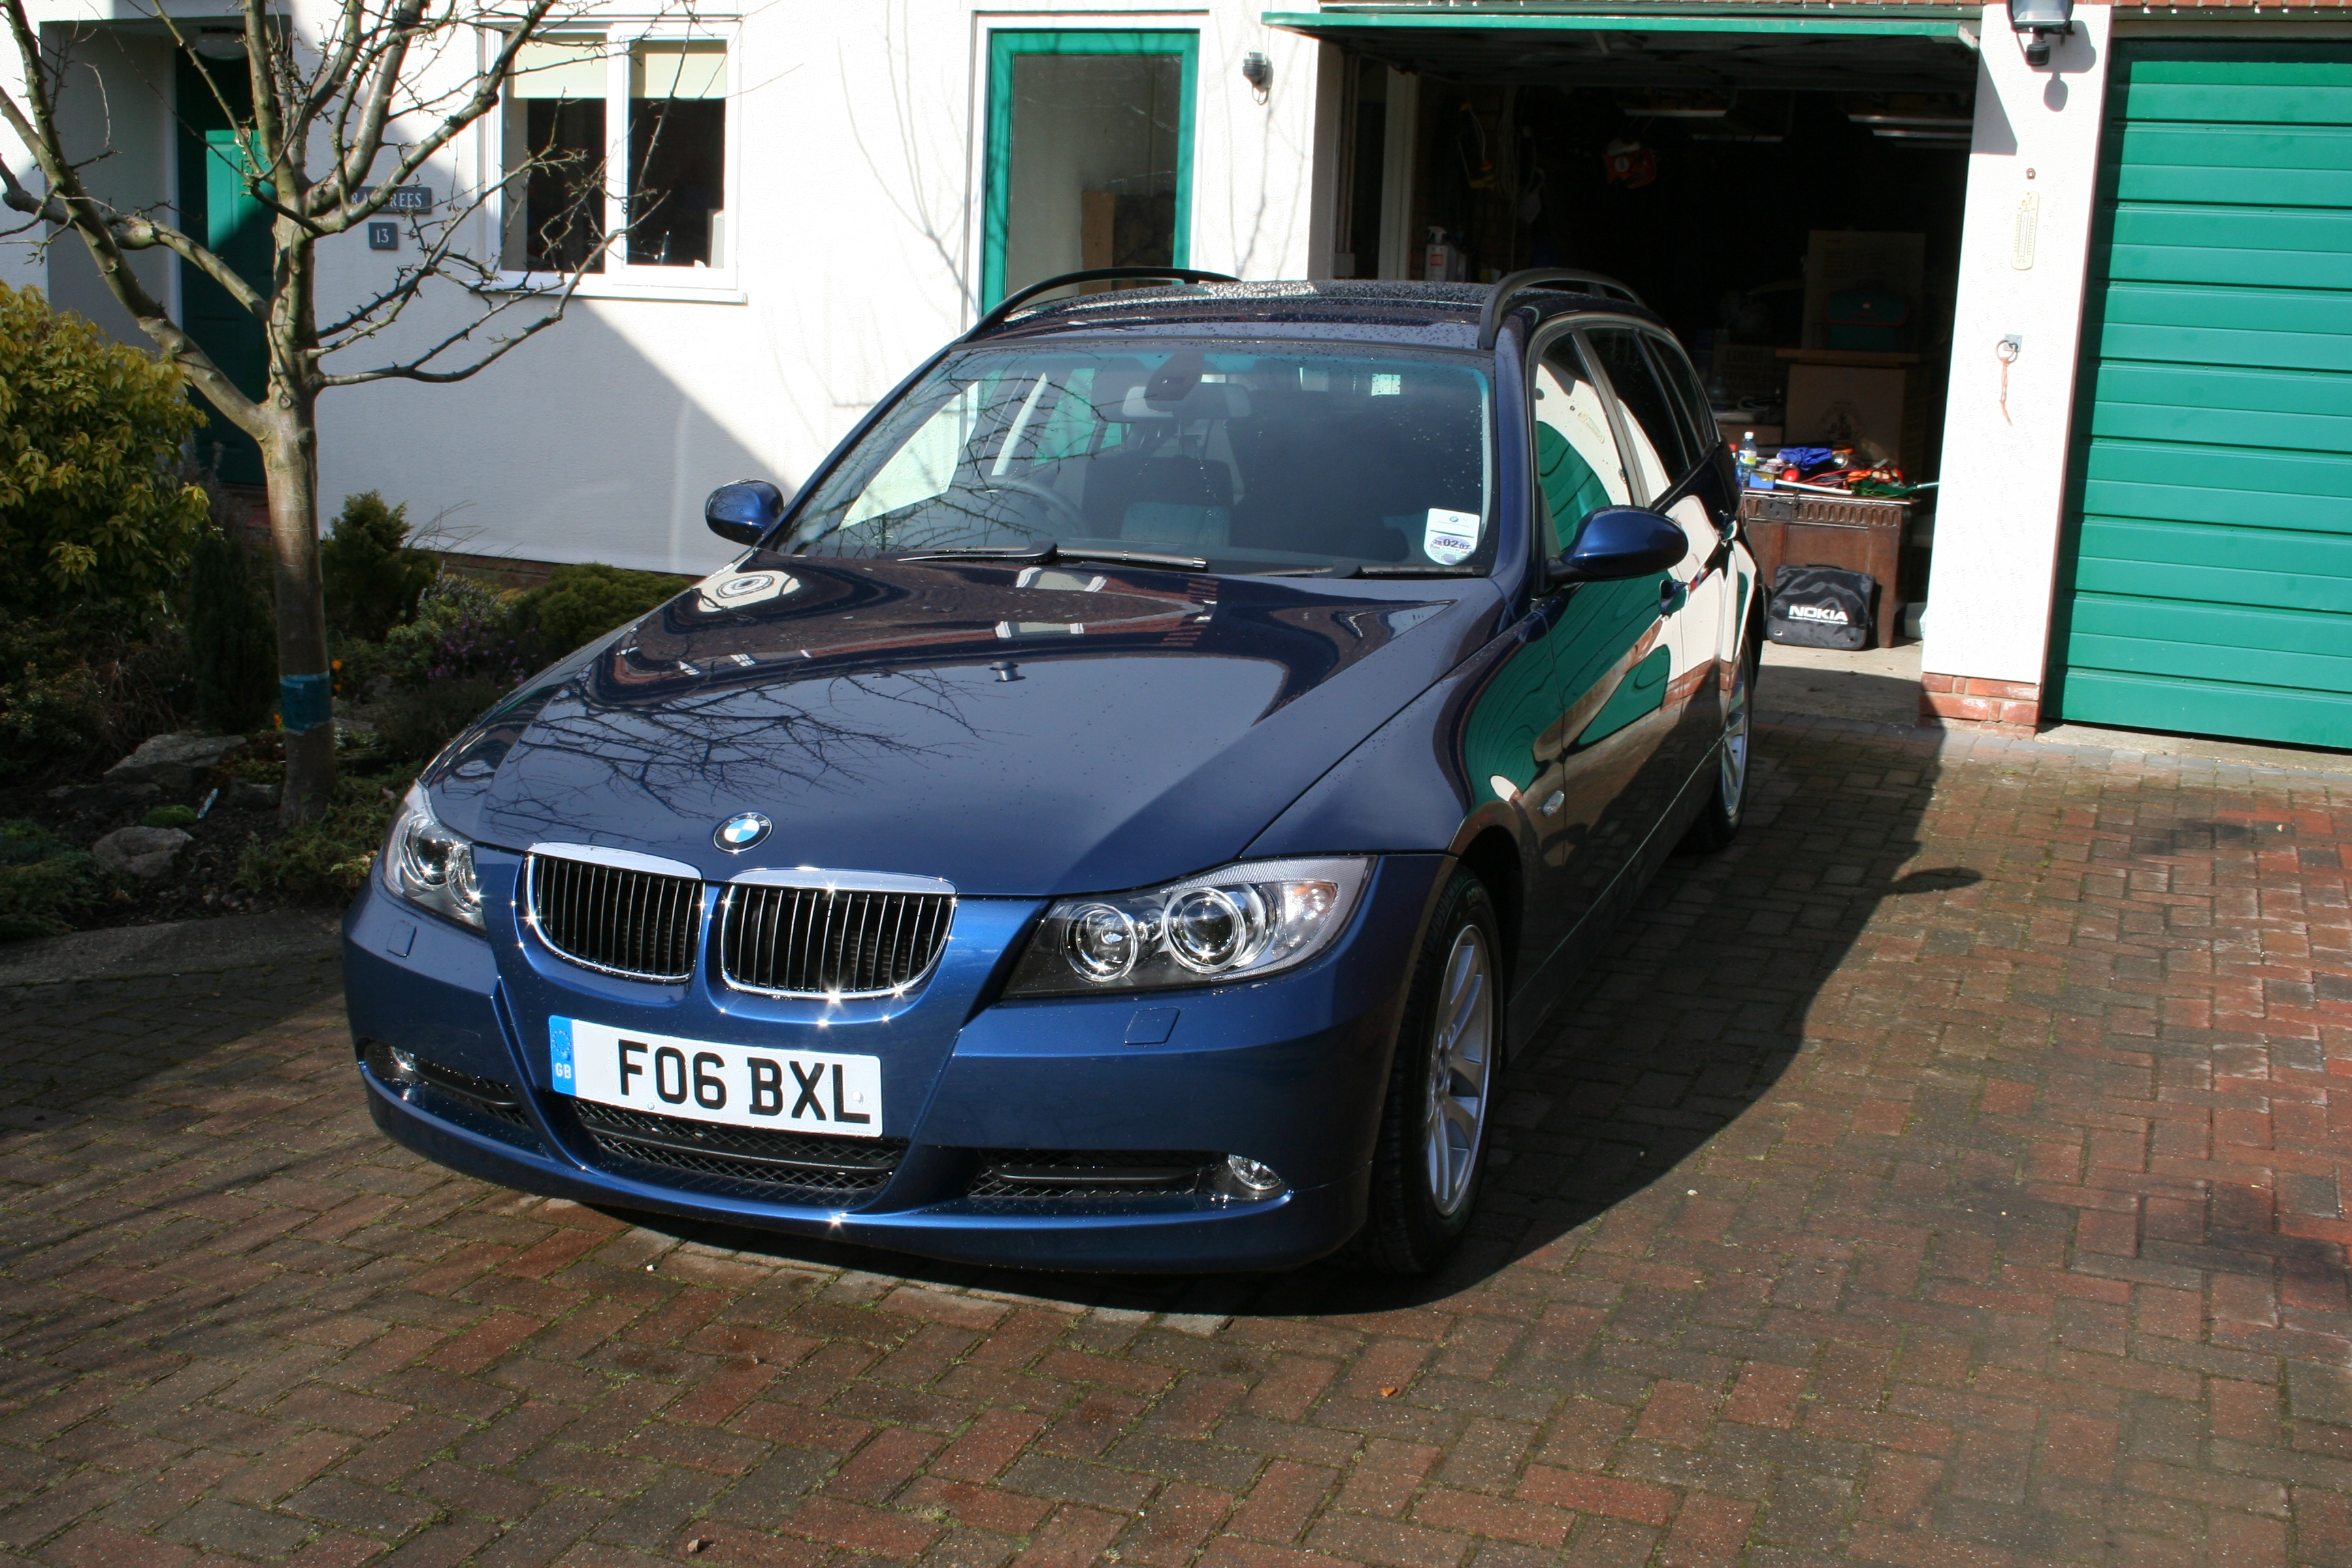 File:BMW 320d SE Touring (107205490).jpg - Wikimedia Commons